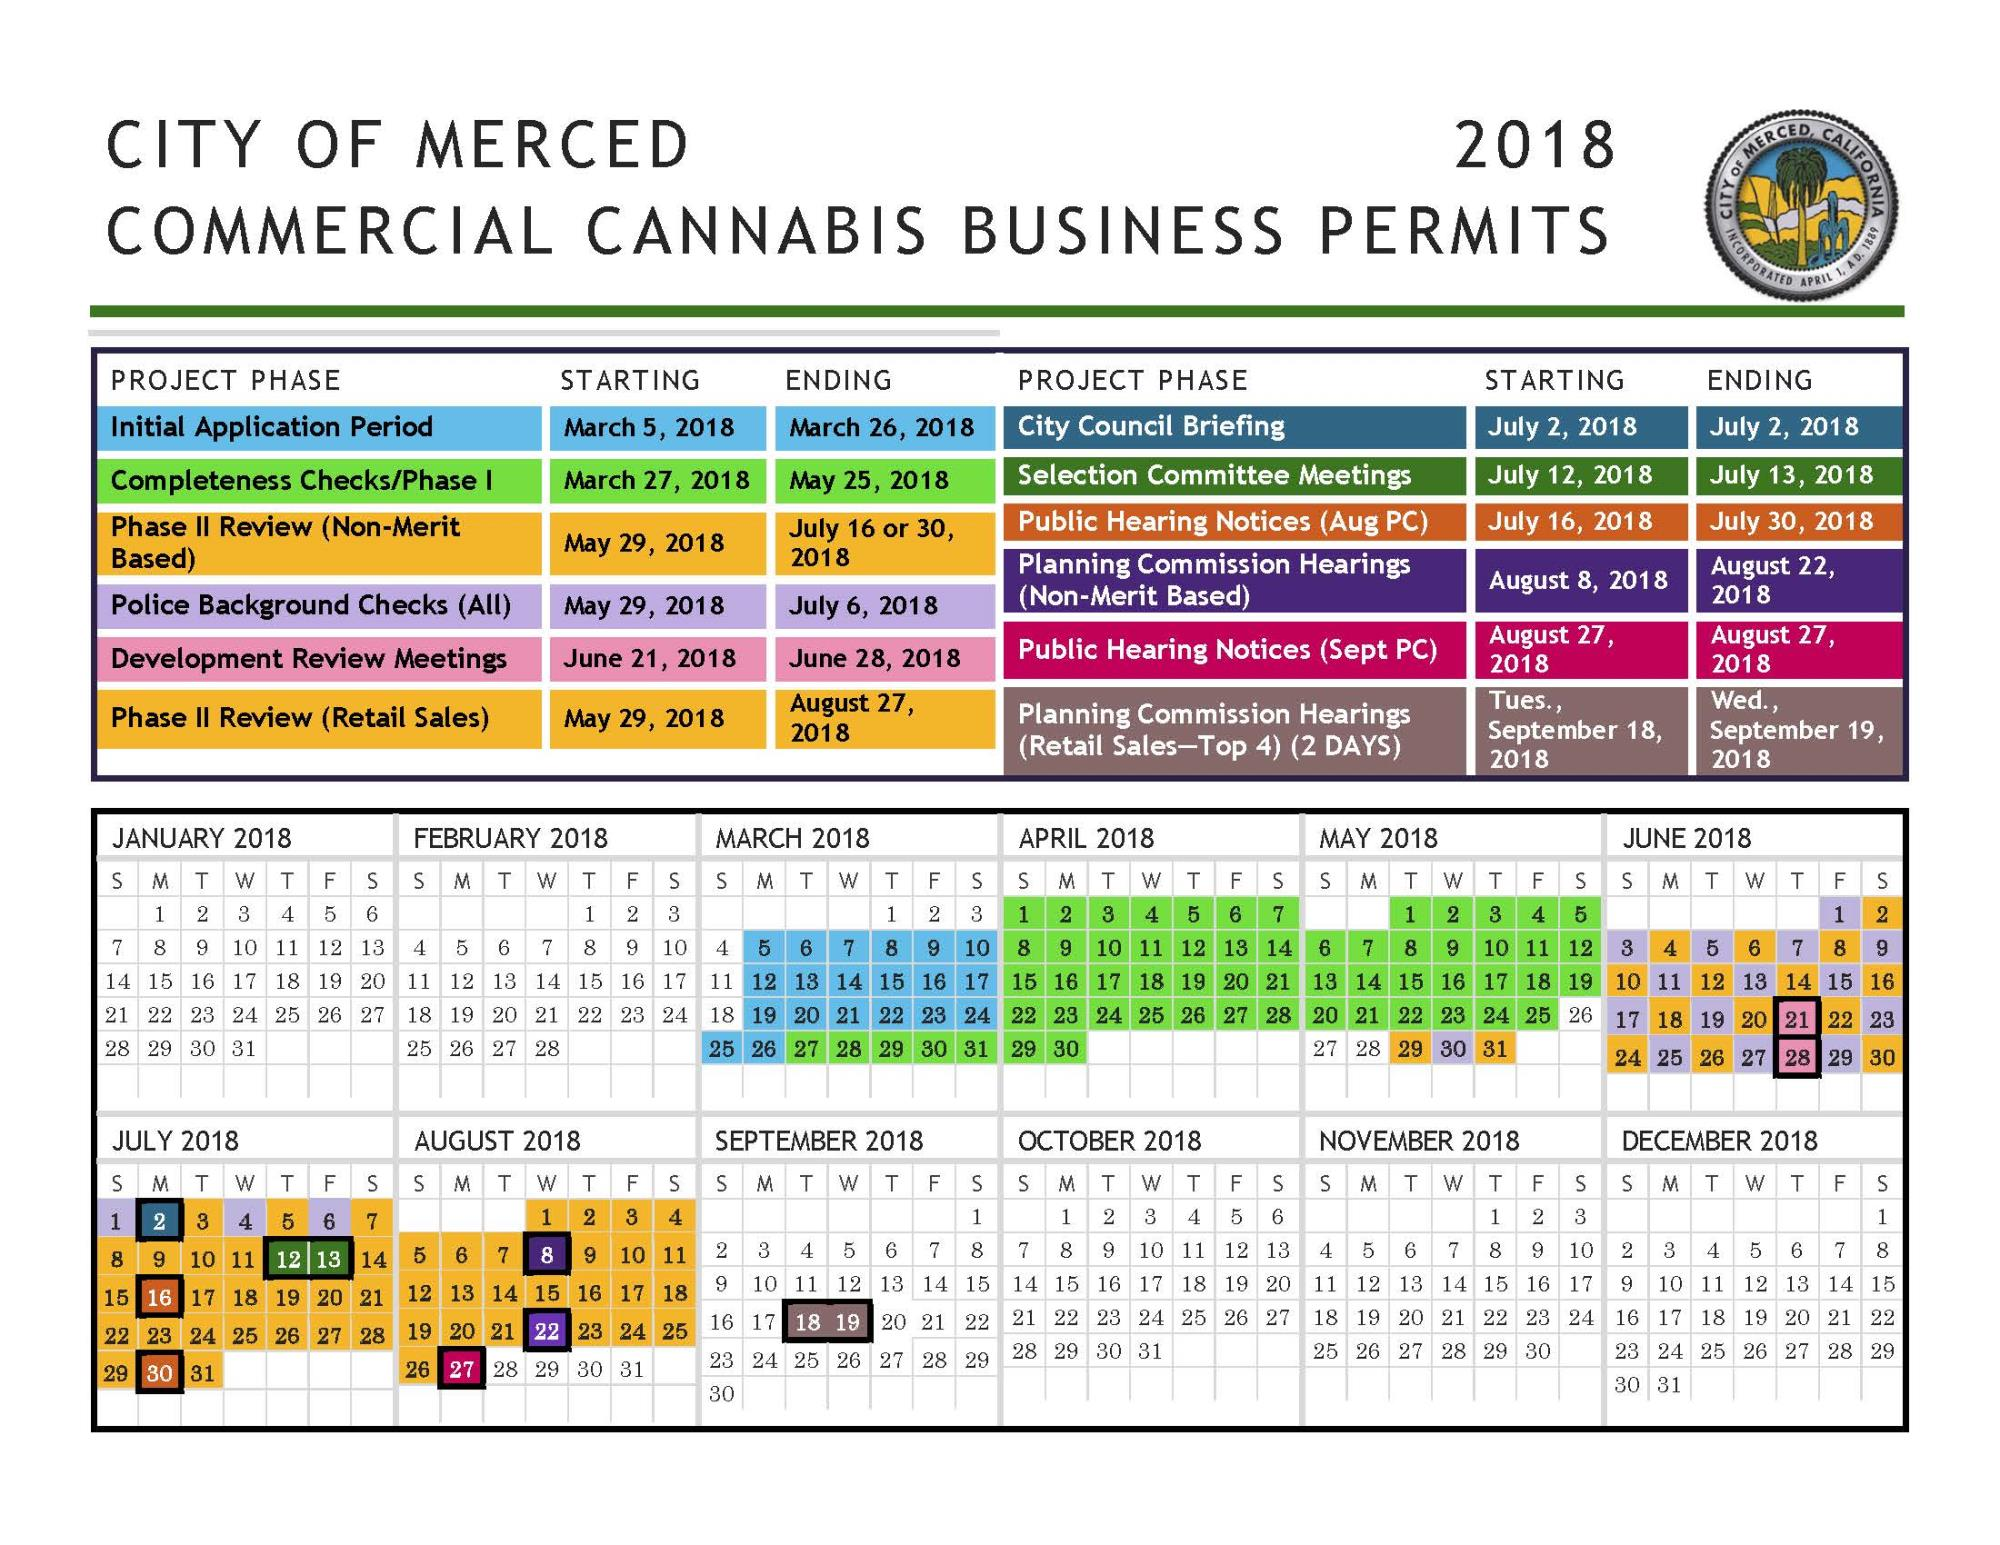 Schedule for Cannabis Applications 2018